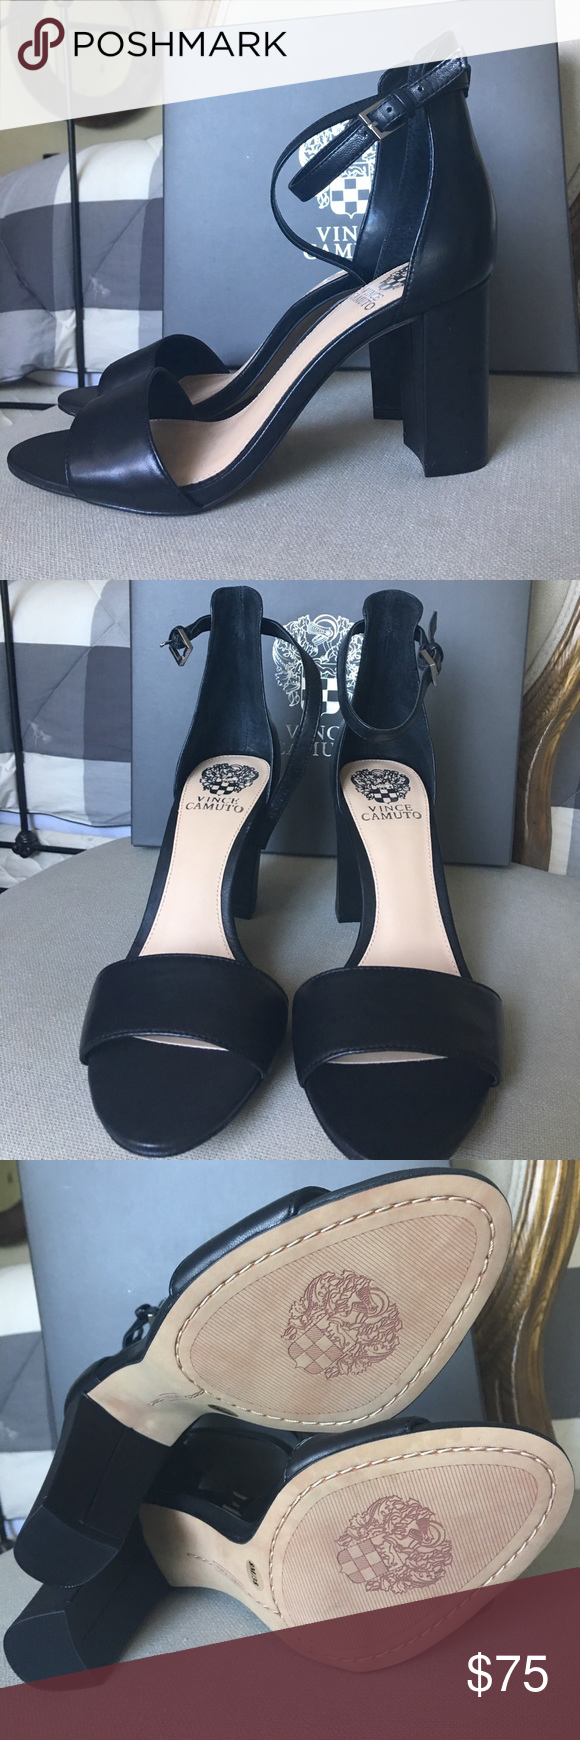 Nwt Black Camuto Leather Canute Heeled Vince Sandals PXnwO80k